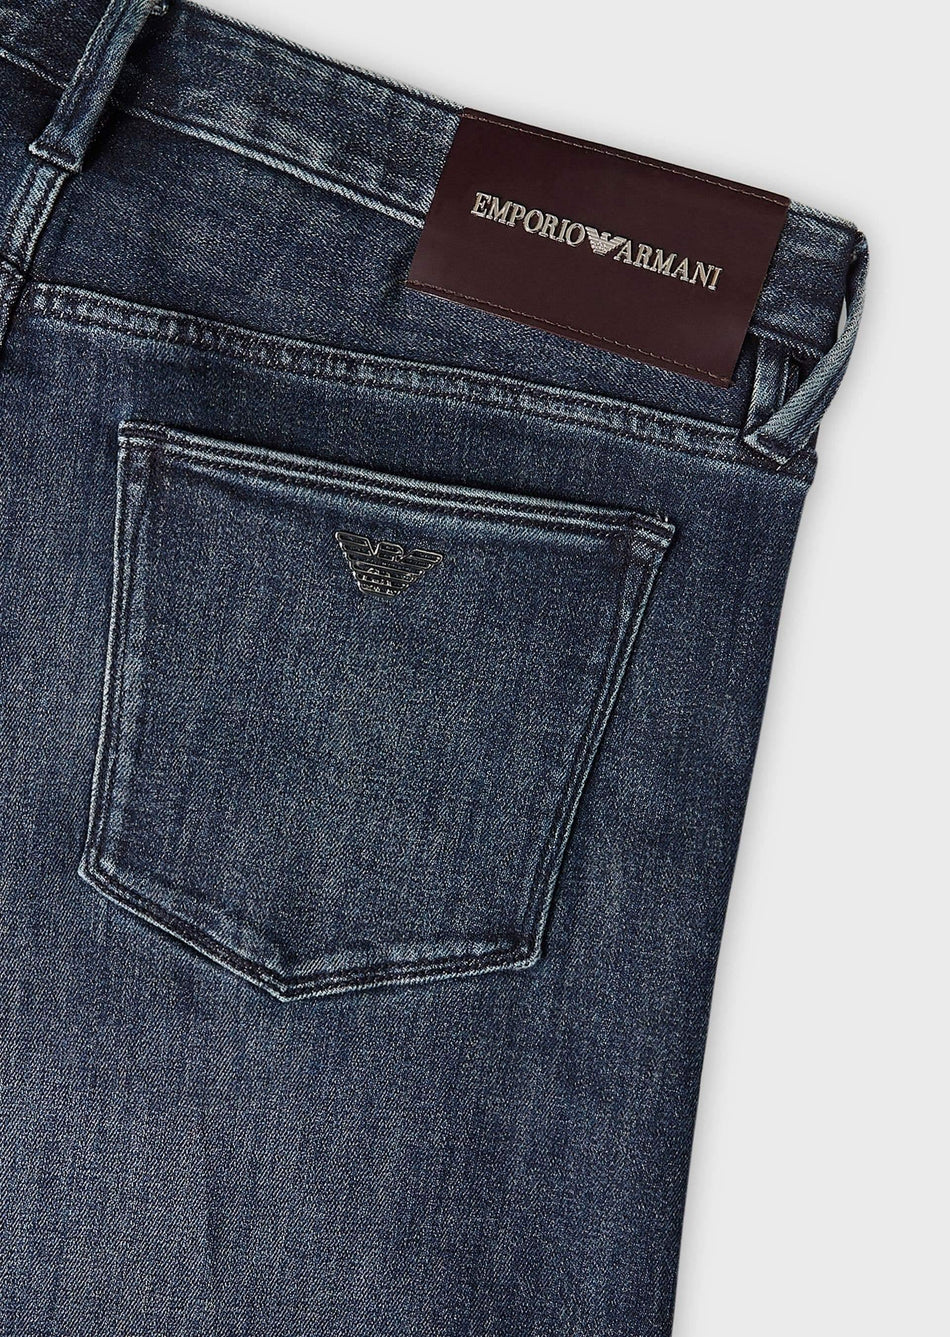 jeans j75 slim fit in denim misto seta EMPORIO ARMANI - Vittorio Citro Boutique